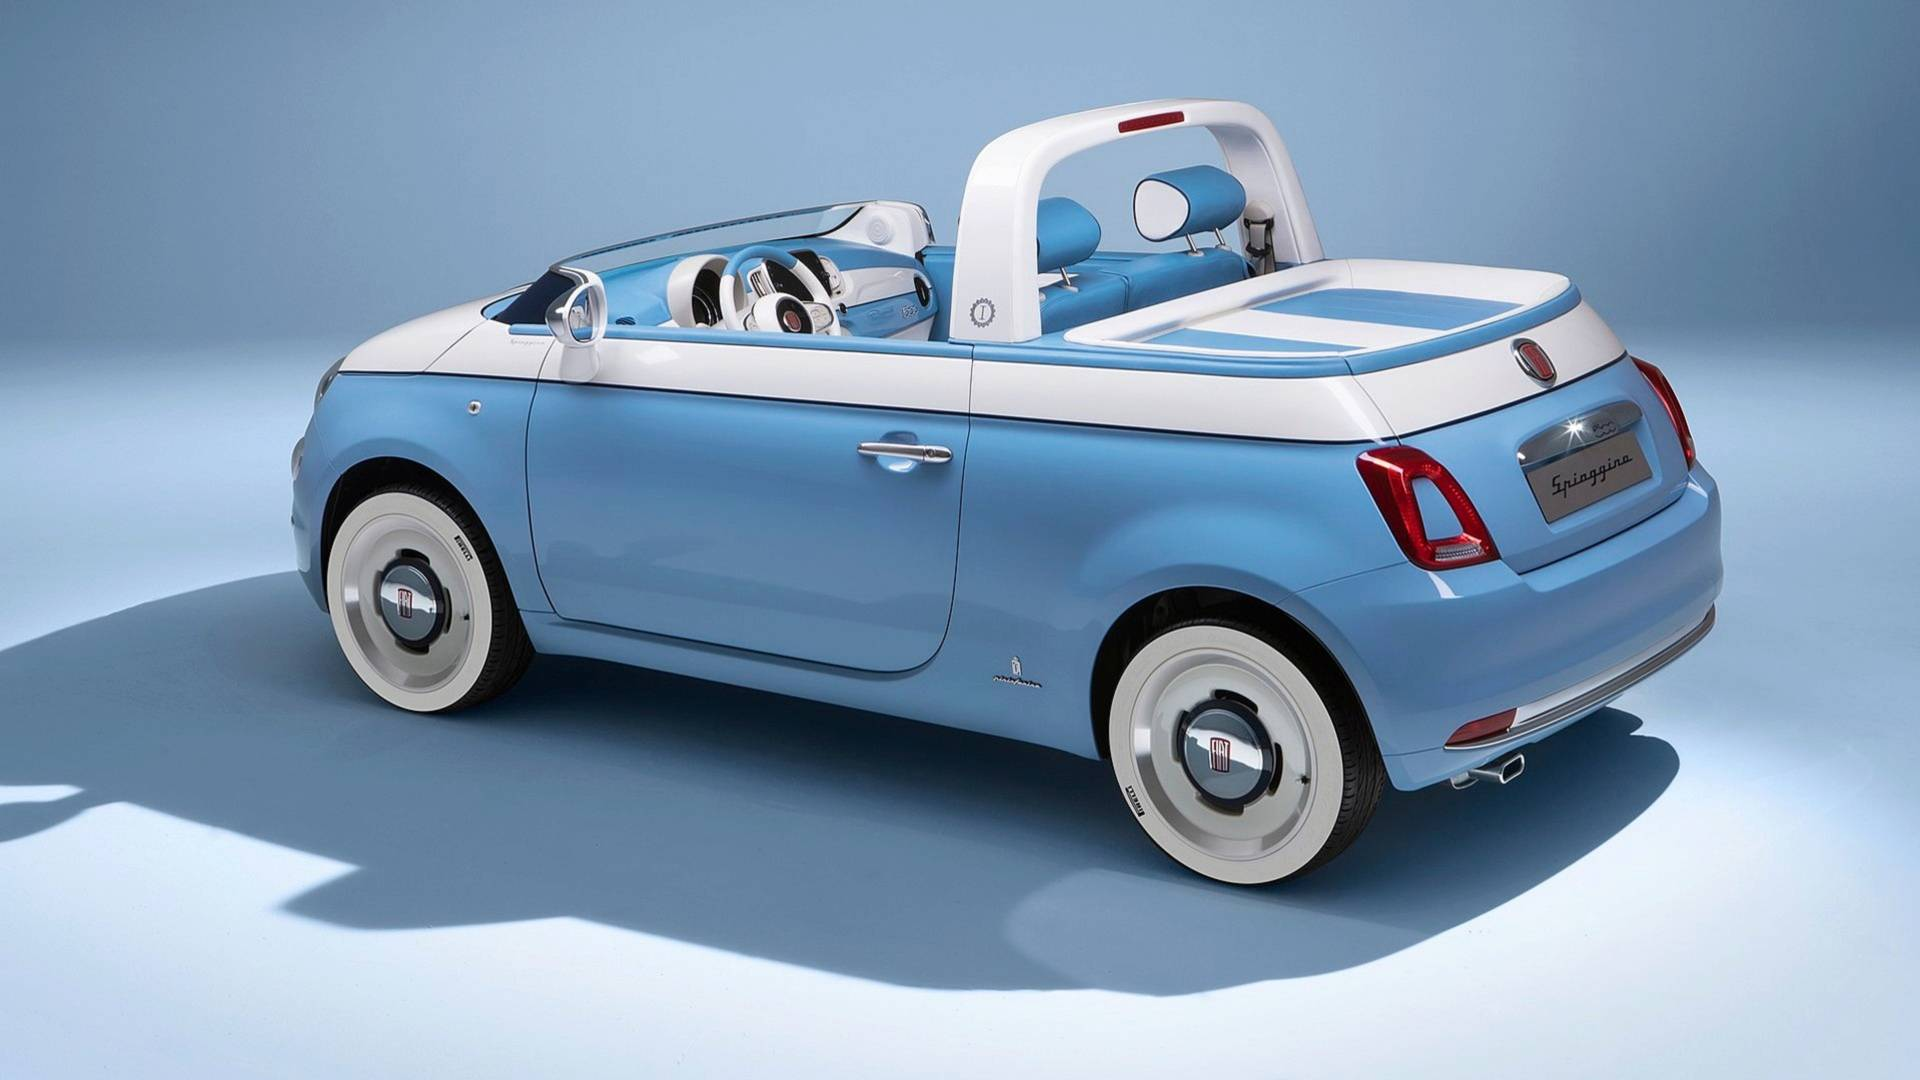 Fiat 500 Spiaggina Concept Celebrates The Original Jolly Cinquecento